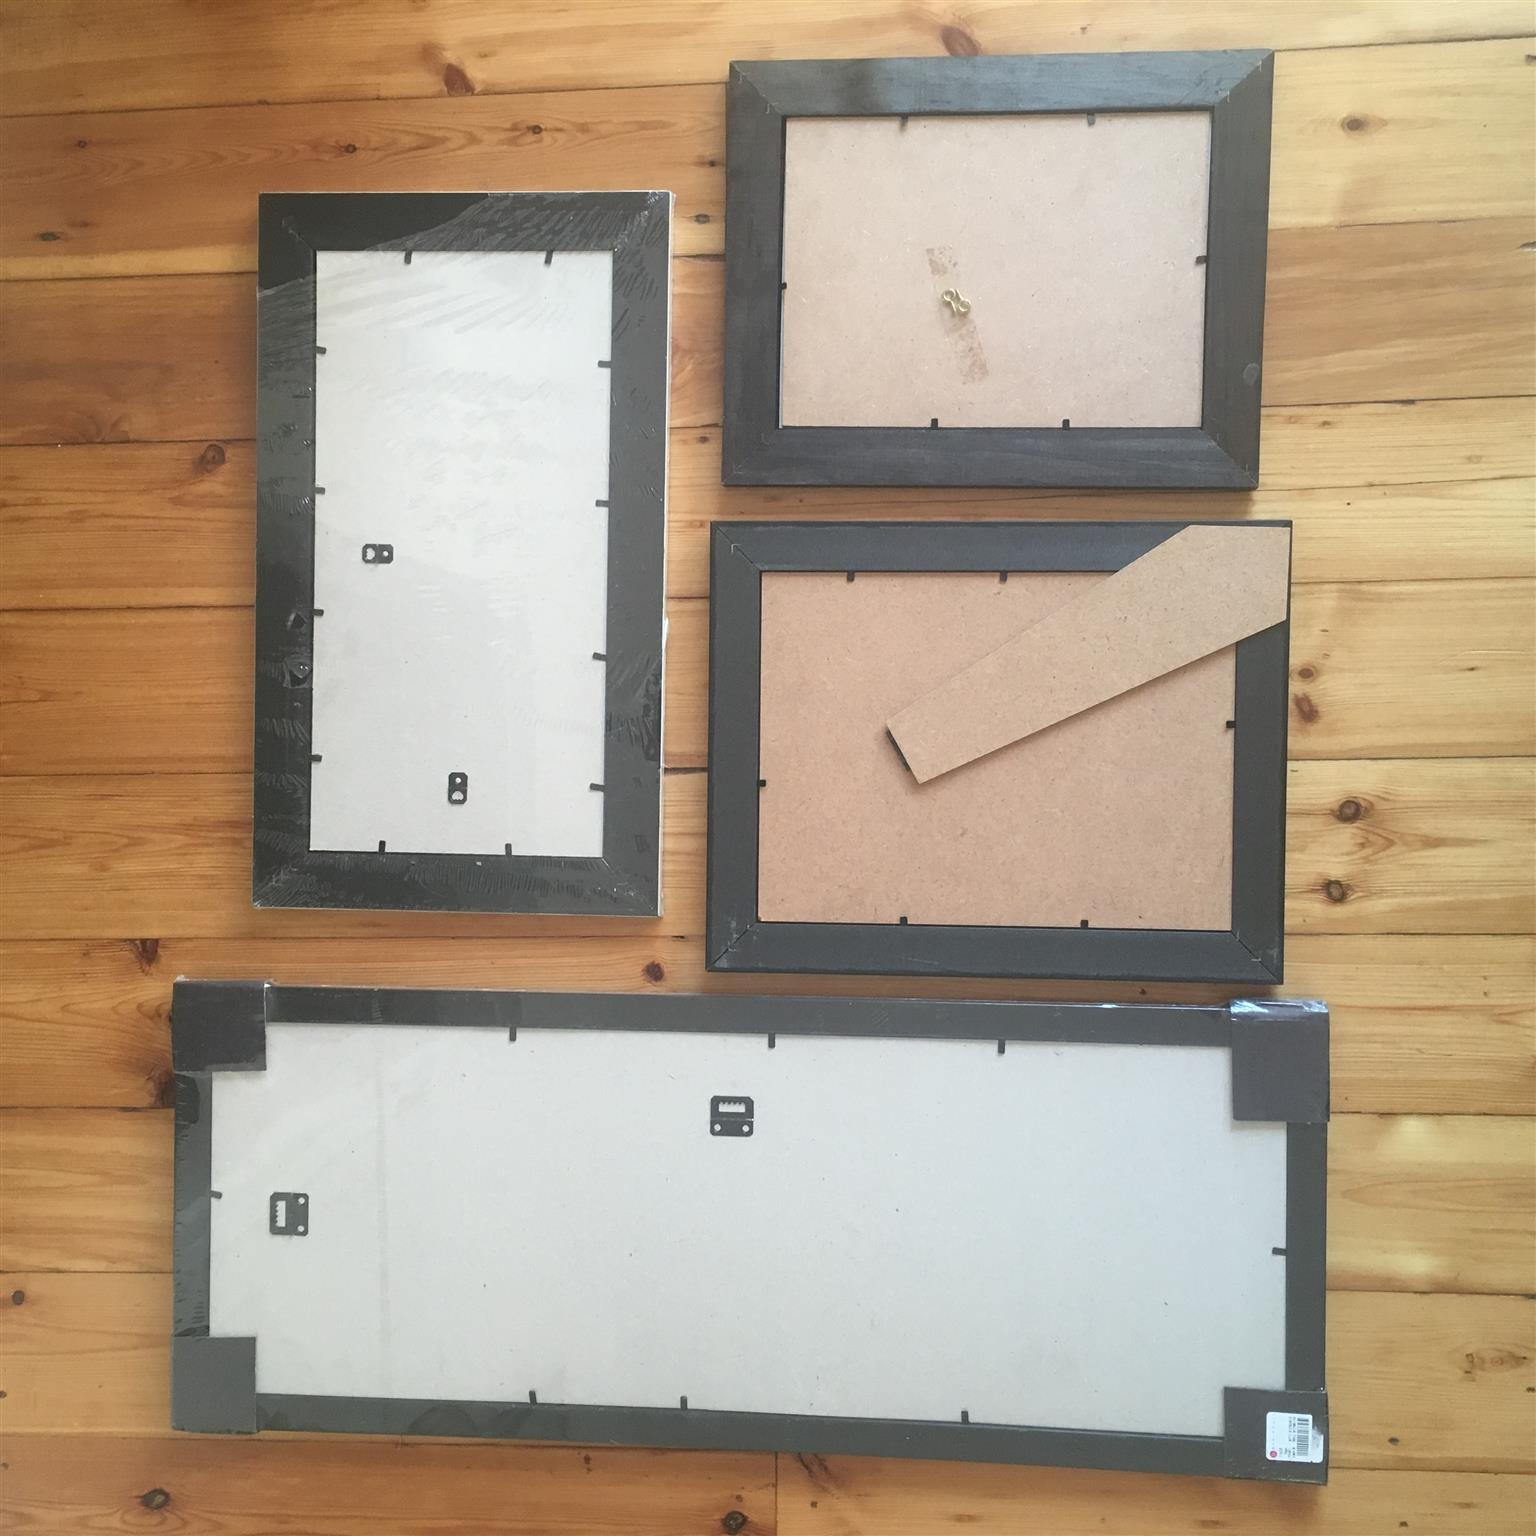 Variety of photo frames (2x NEW in original packaging and 2x used) - R300 for the 4 frames